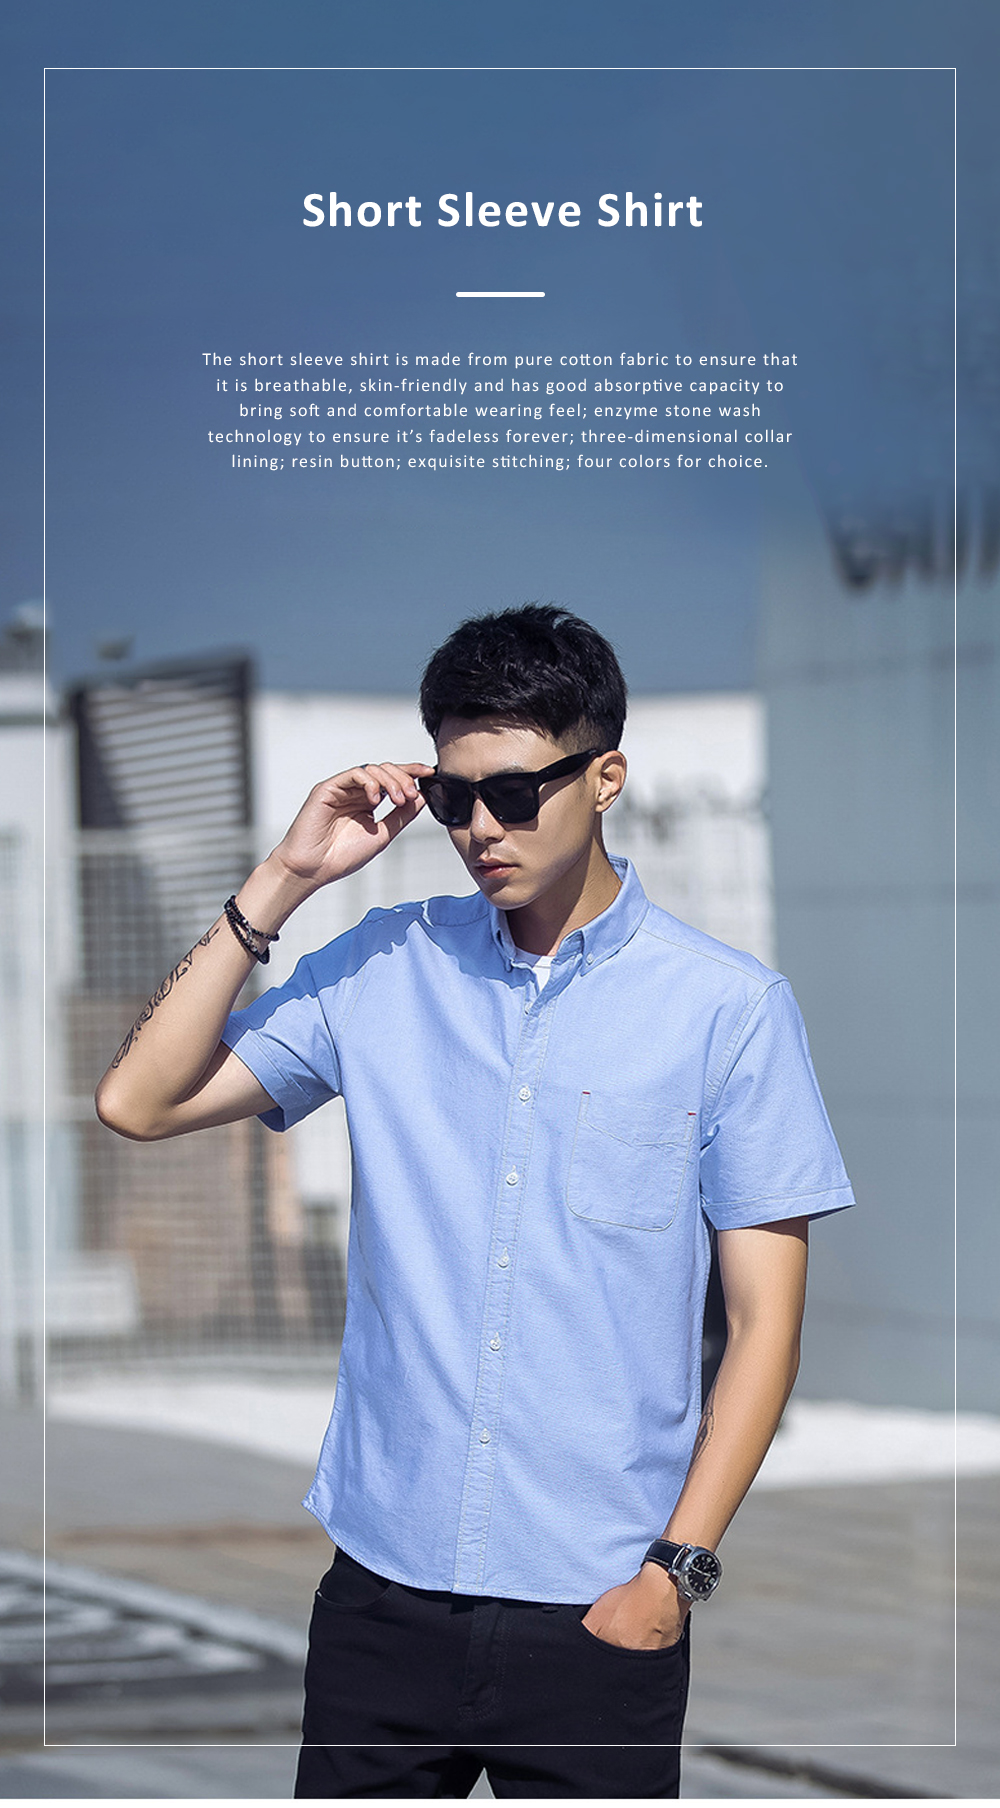 Pure Cotton Short Sleeve Shirt with Embroidered for Men's Daily Wear in Summer  Casual Style Simple Designed Pure Color Men Clothing 0